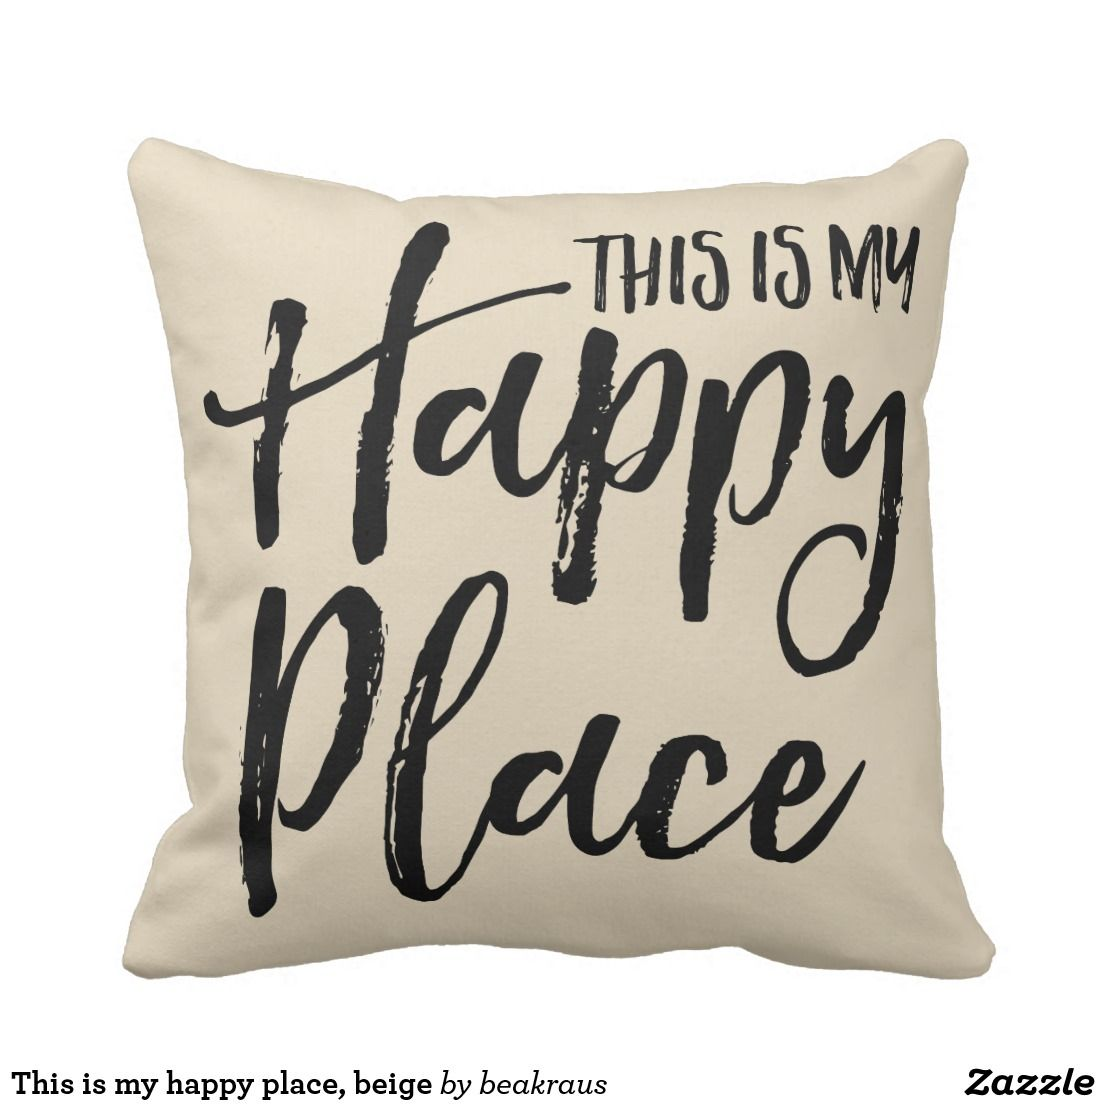 This is my happy place, beige throw pillow